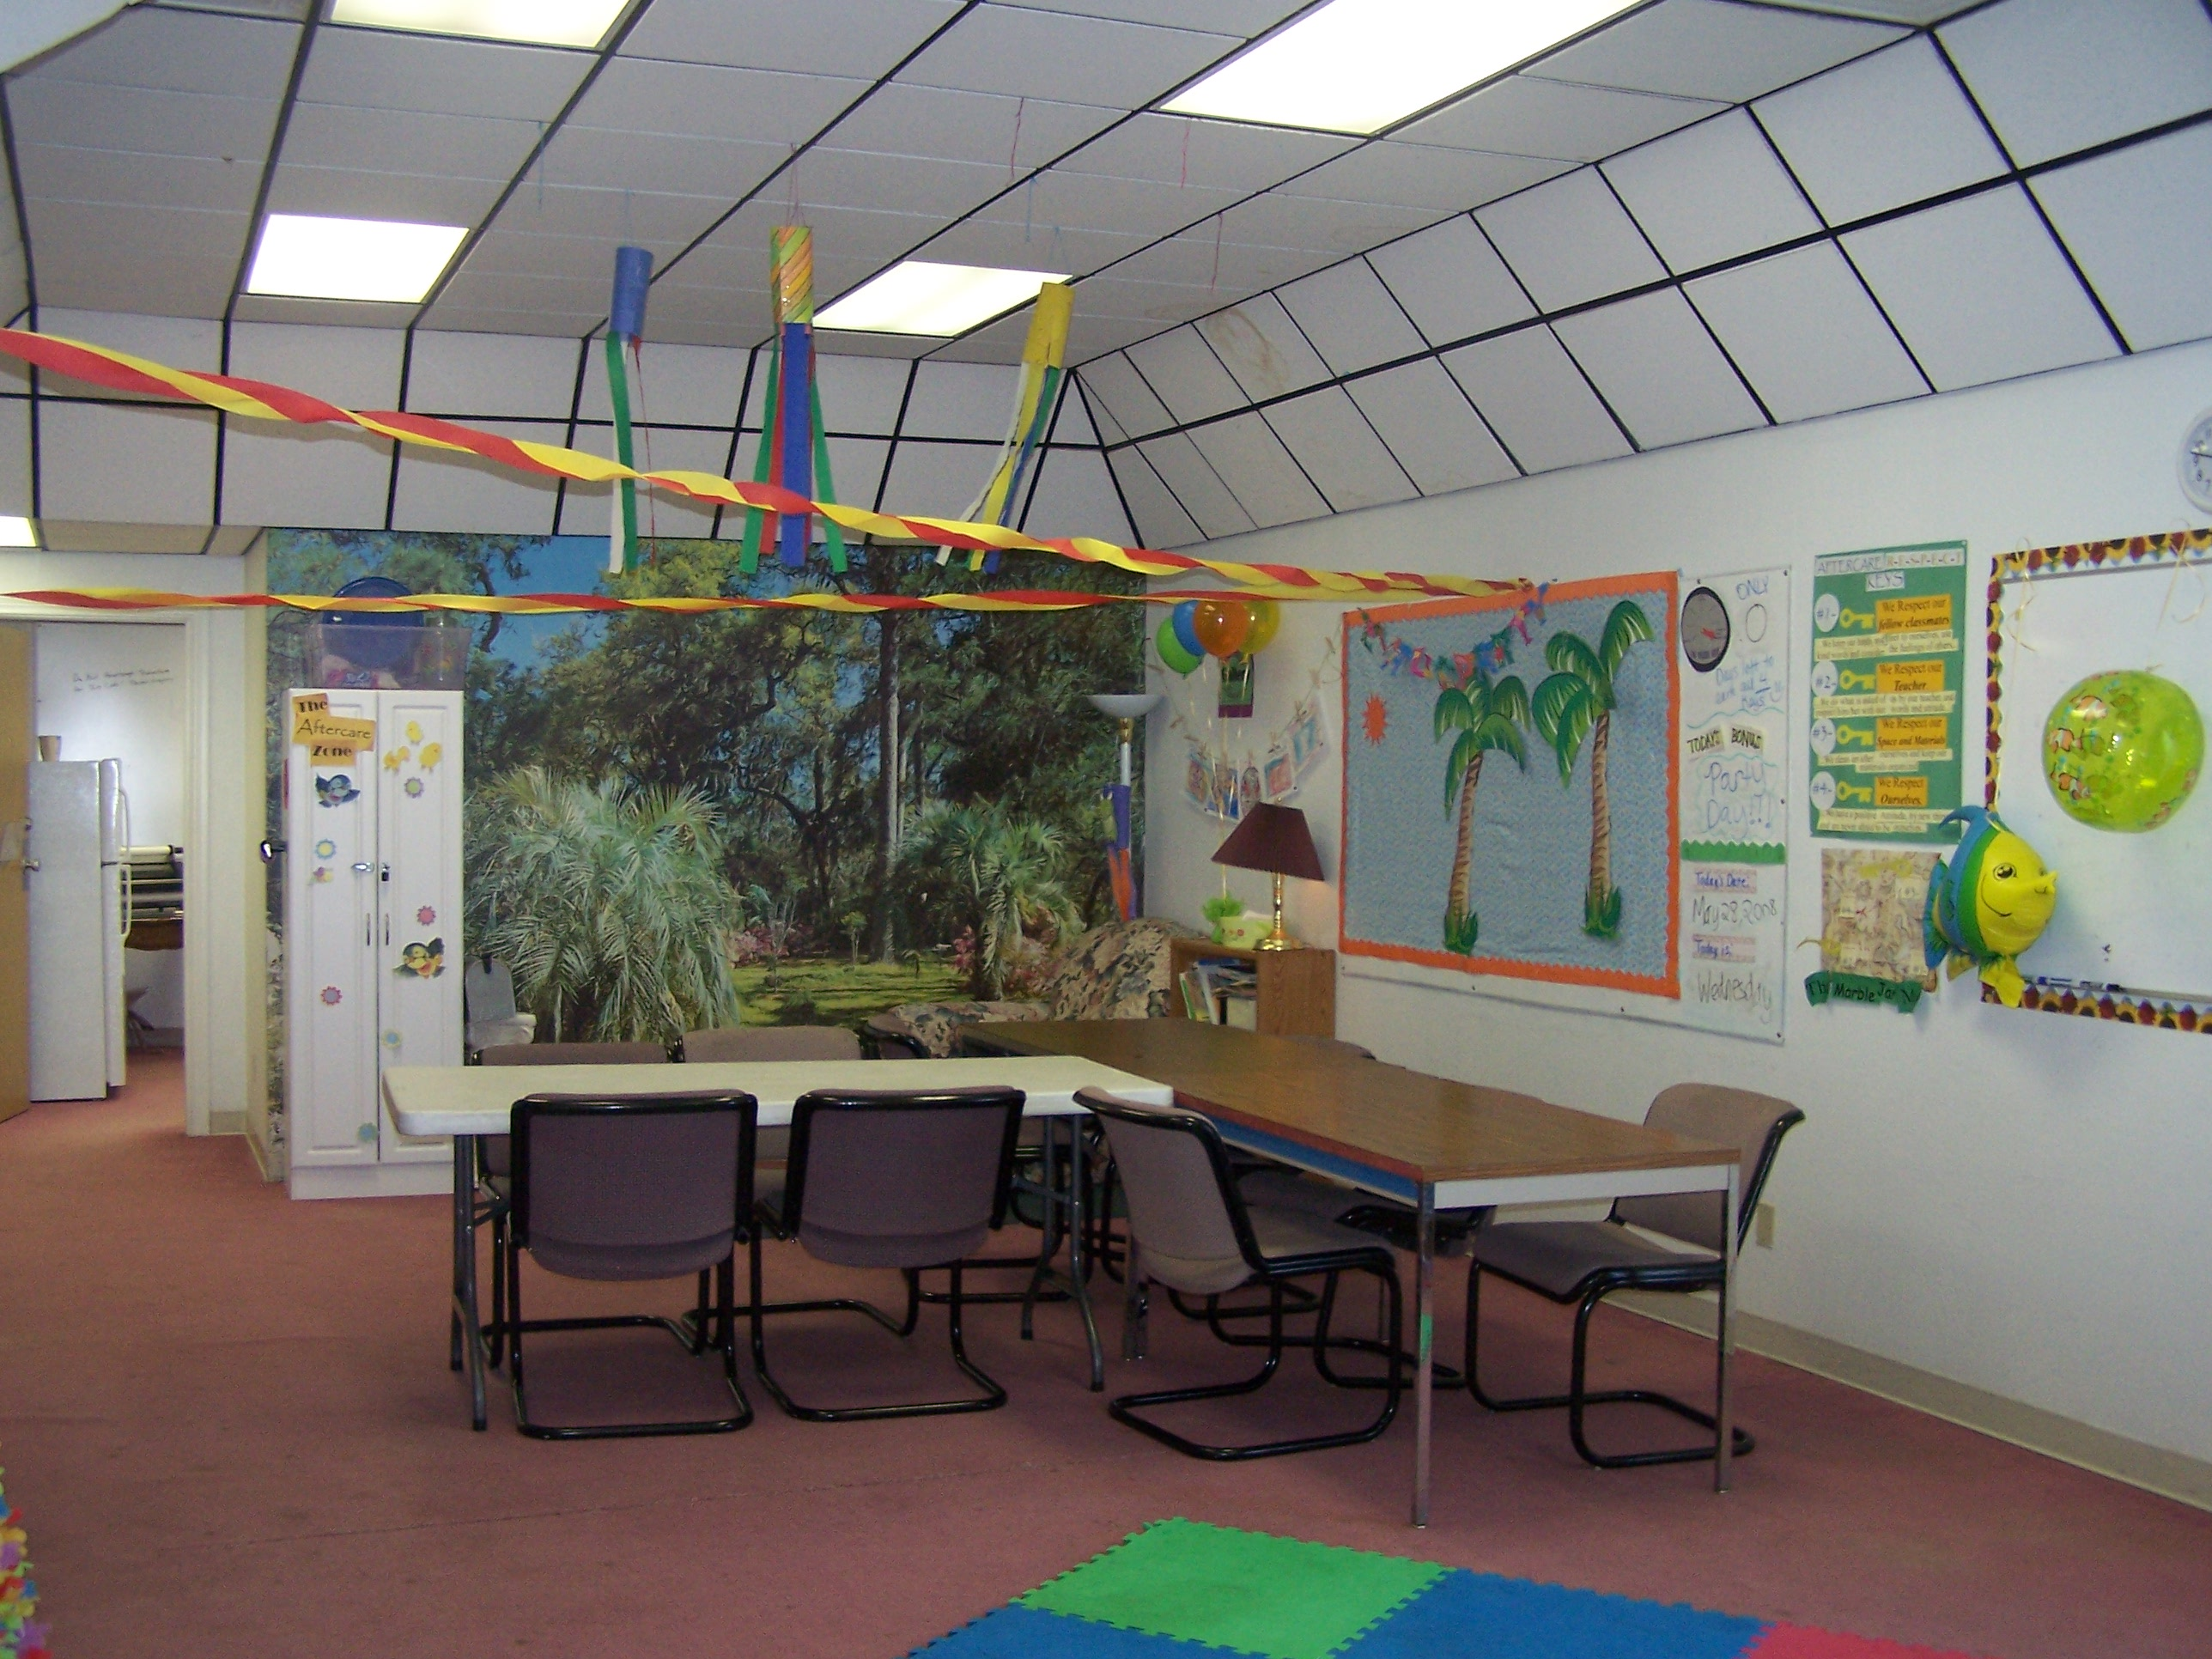 Modern Classroom Furniture Ideas : Preschool classroom decorating ideas dream house experience